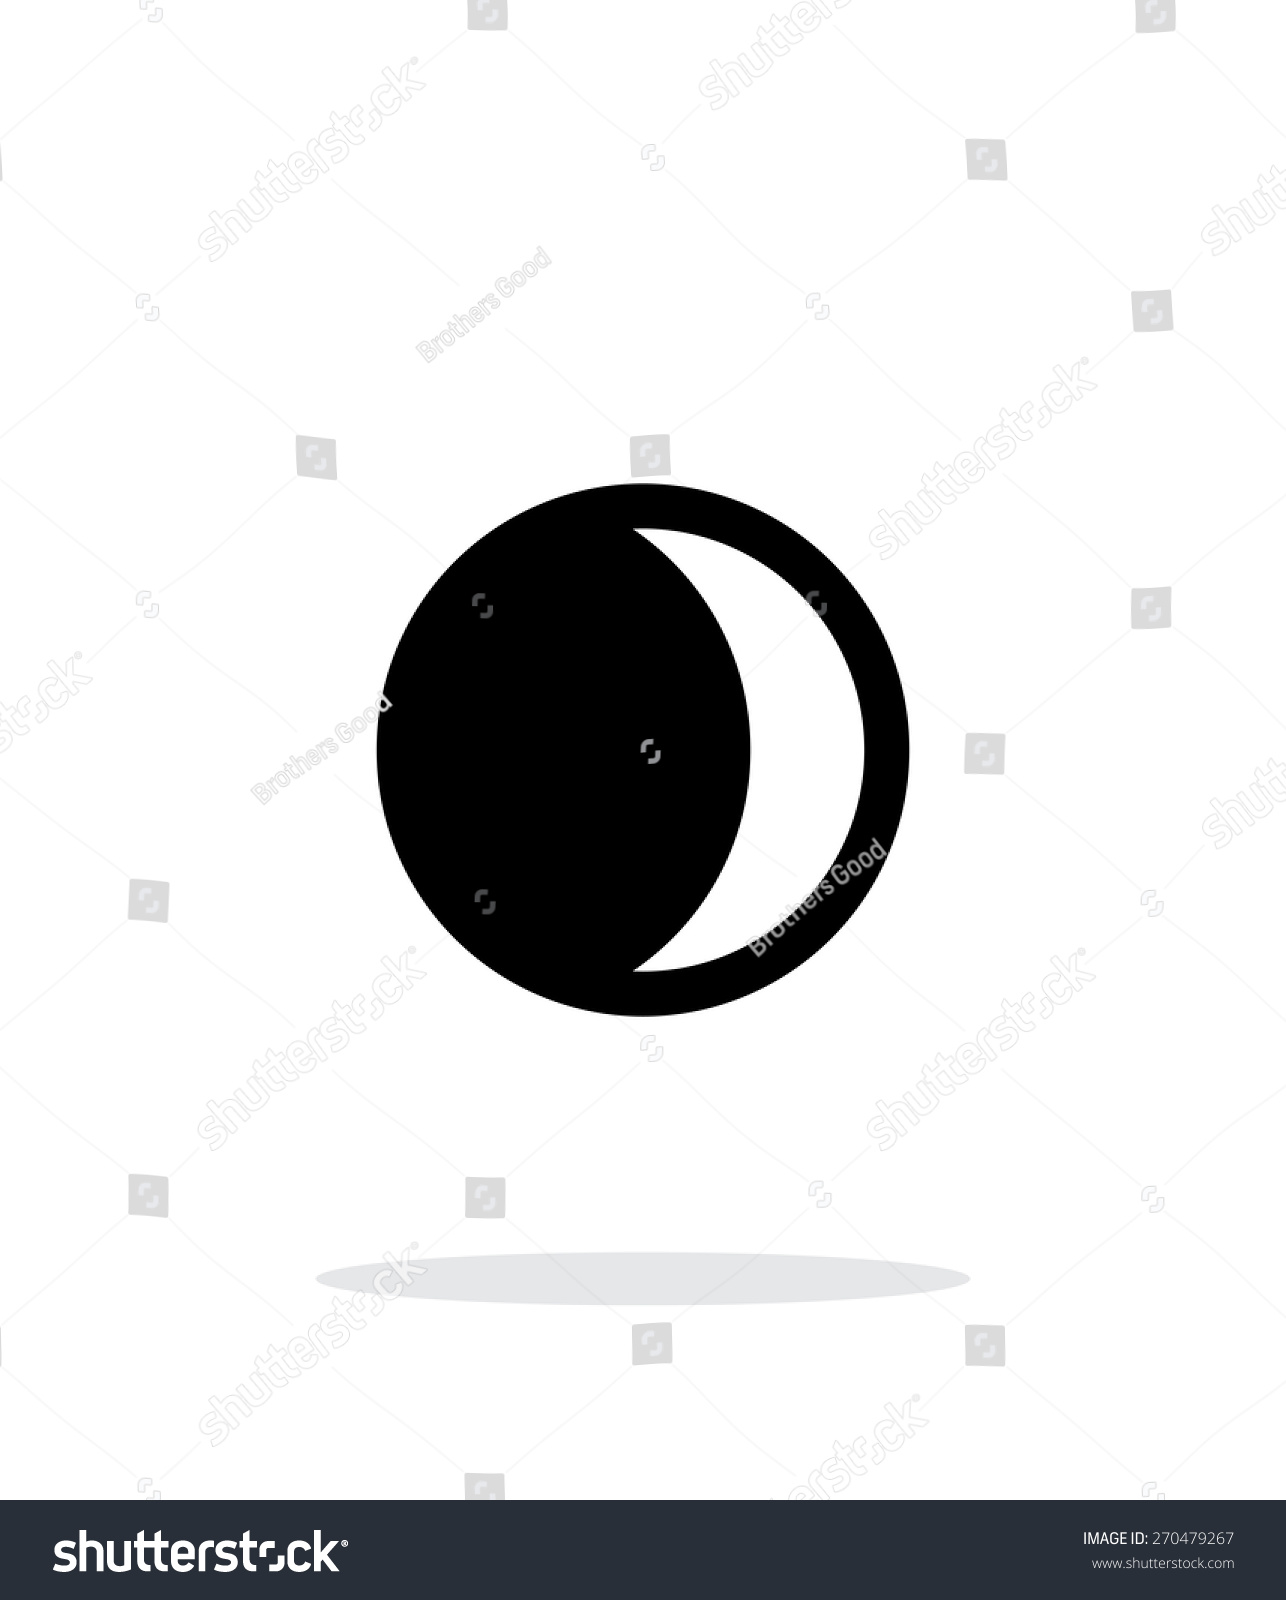 Waxing Crescent Moon Simple Icon On Stock Vector 270479267